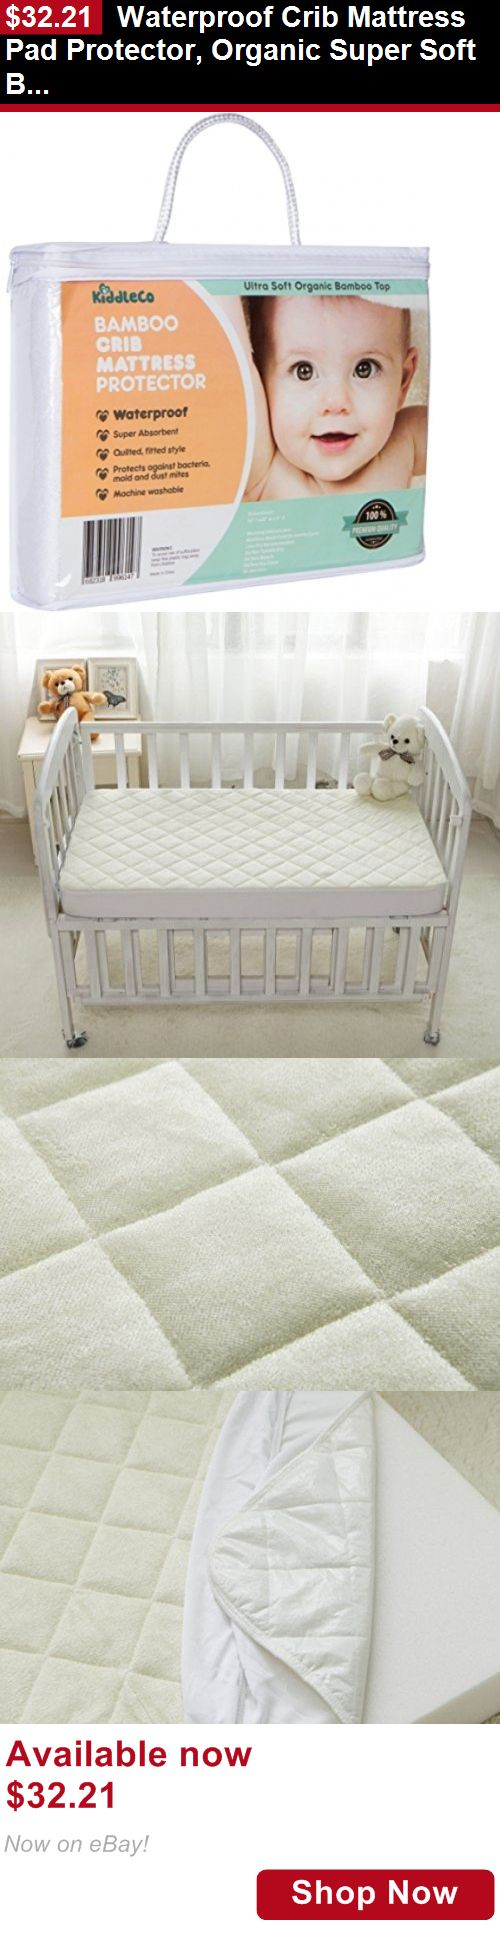 Mattress Pads And Covers: Waterproof Crib Mattress Pad Protector, Organic Super Soft Bamboo Quilted Cover BUY IT NOW ONLY: $32.21